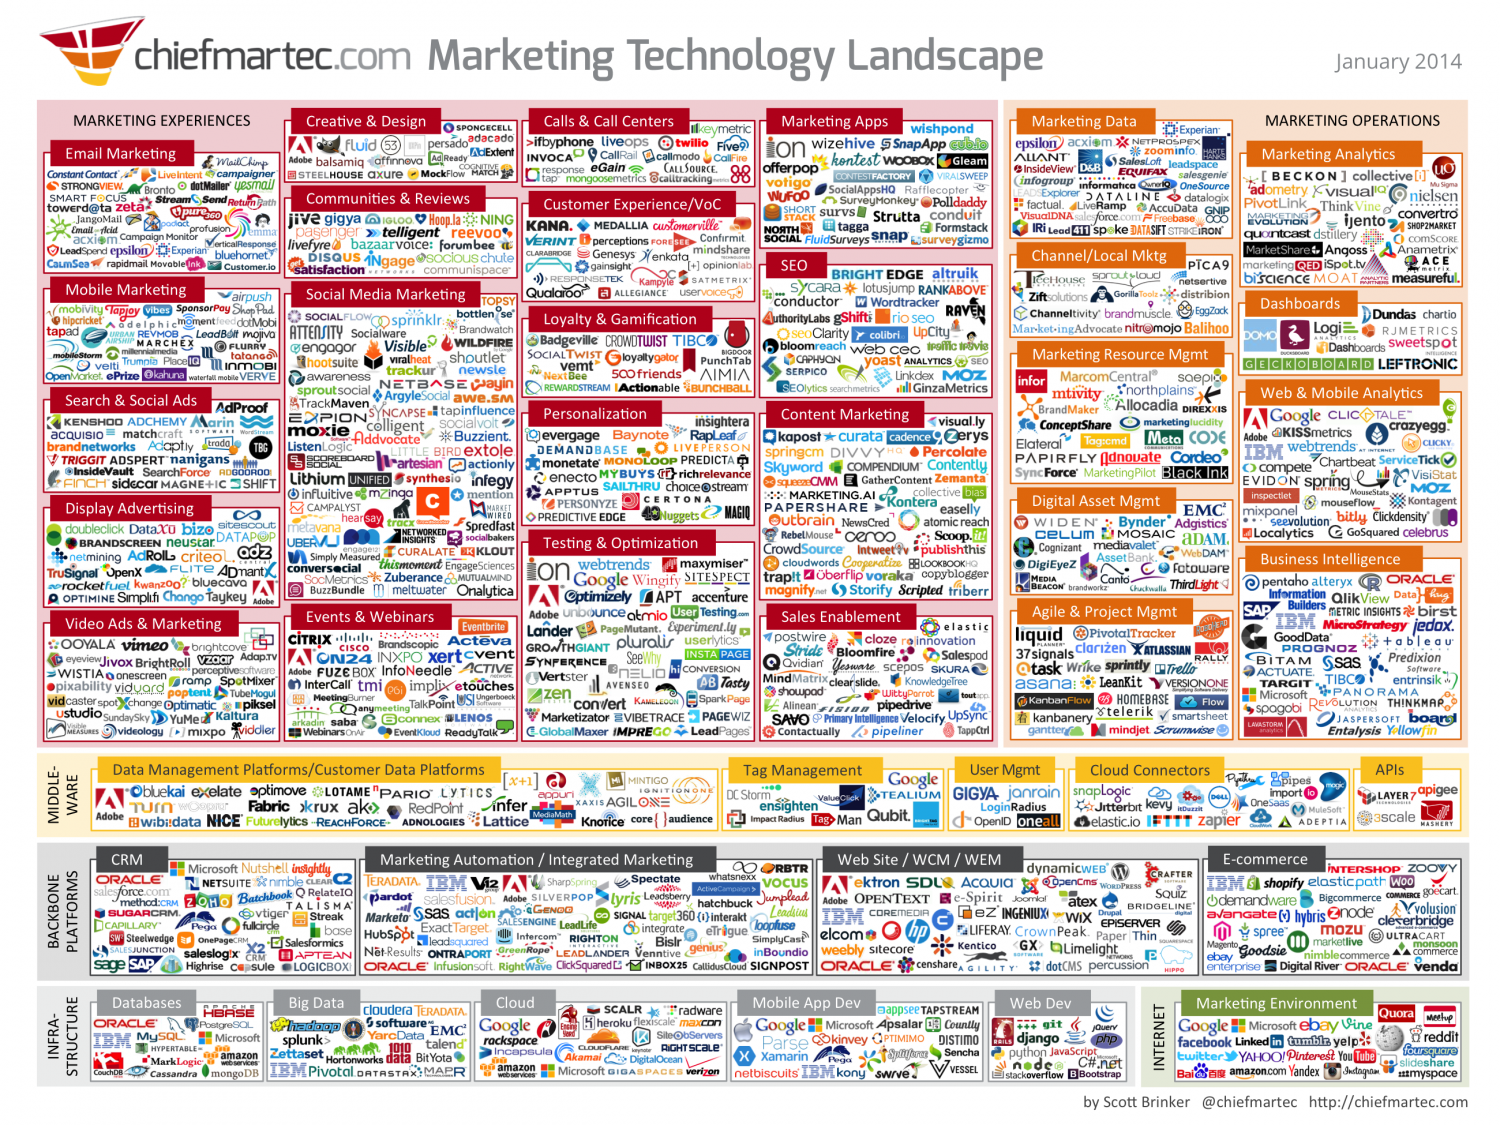 Marketing Technology Landscape 2014 Infographic